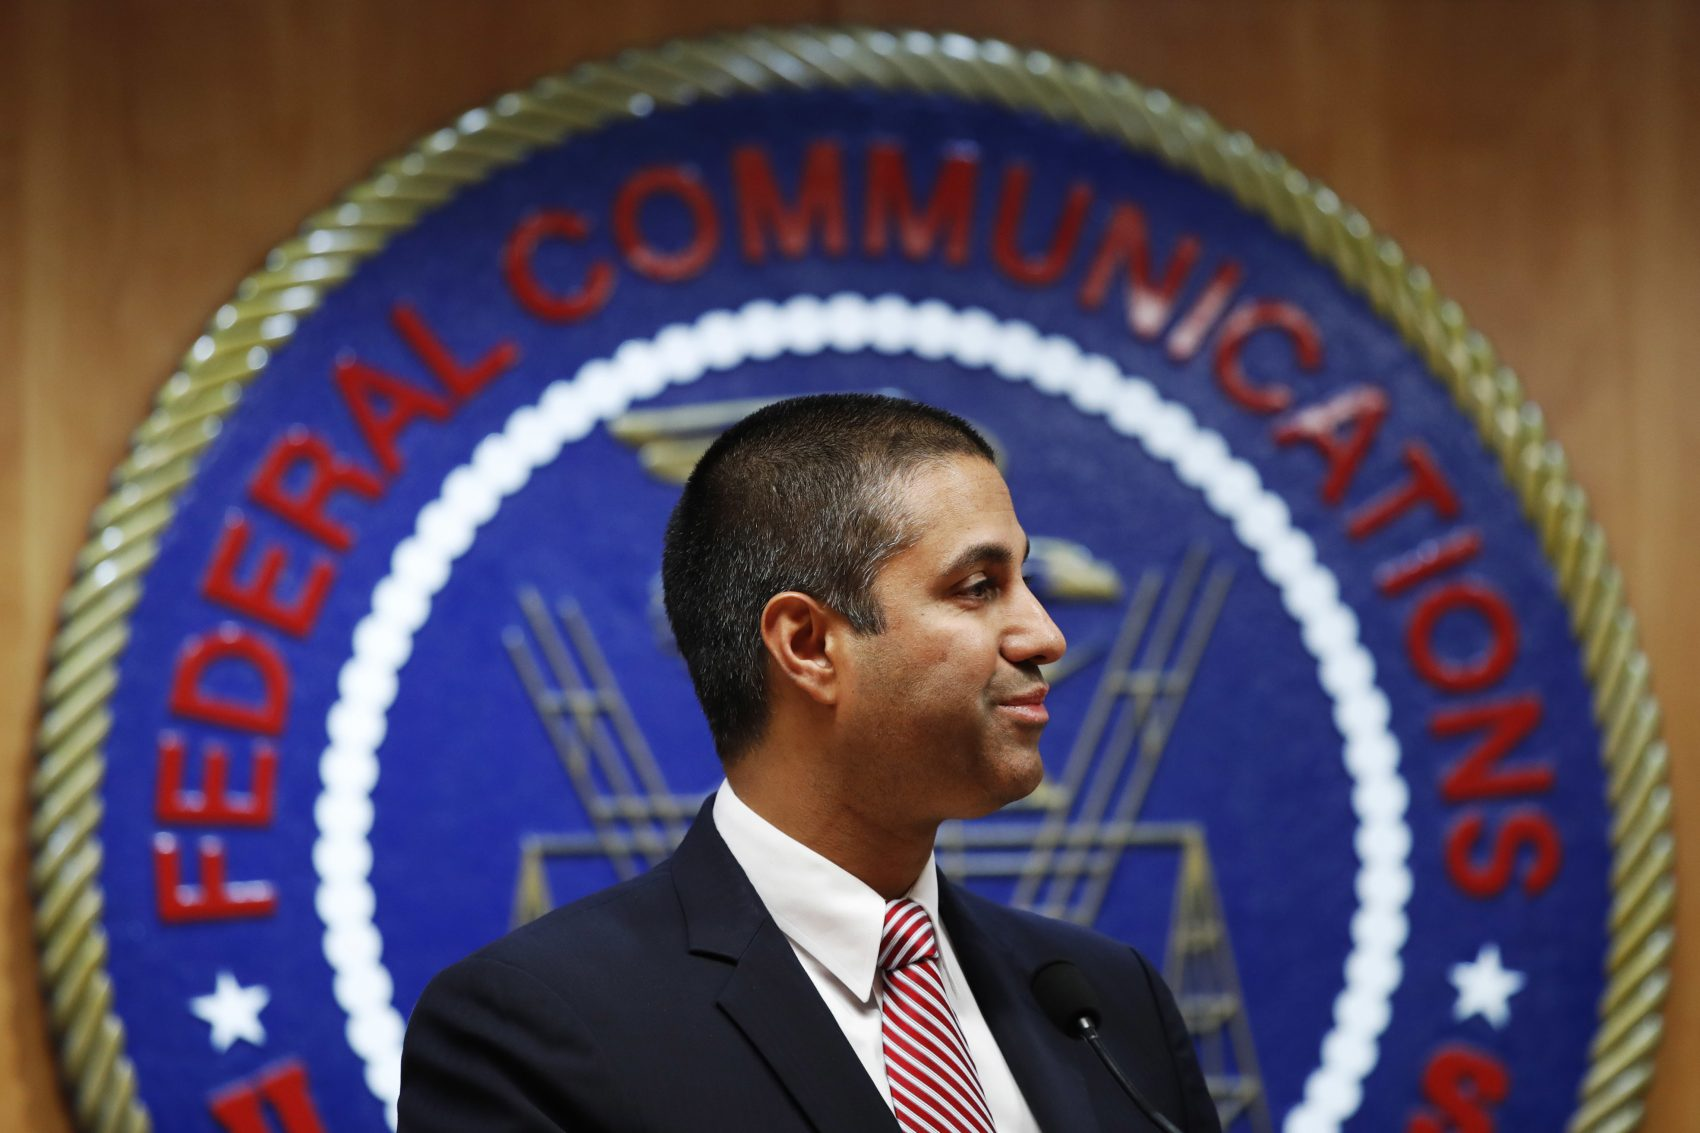 After a meeting voting to end net neutrality, Federal Communications Commission (FCC) Chairman Ajit Pai smiles while listening to a question from a reporter, Thursday, Dec. 14, 2017, in Washington. (Jacquelyn Martin/AP)